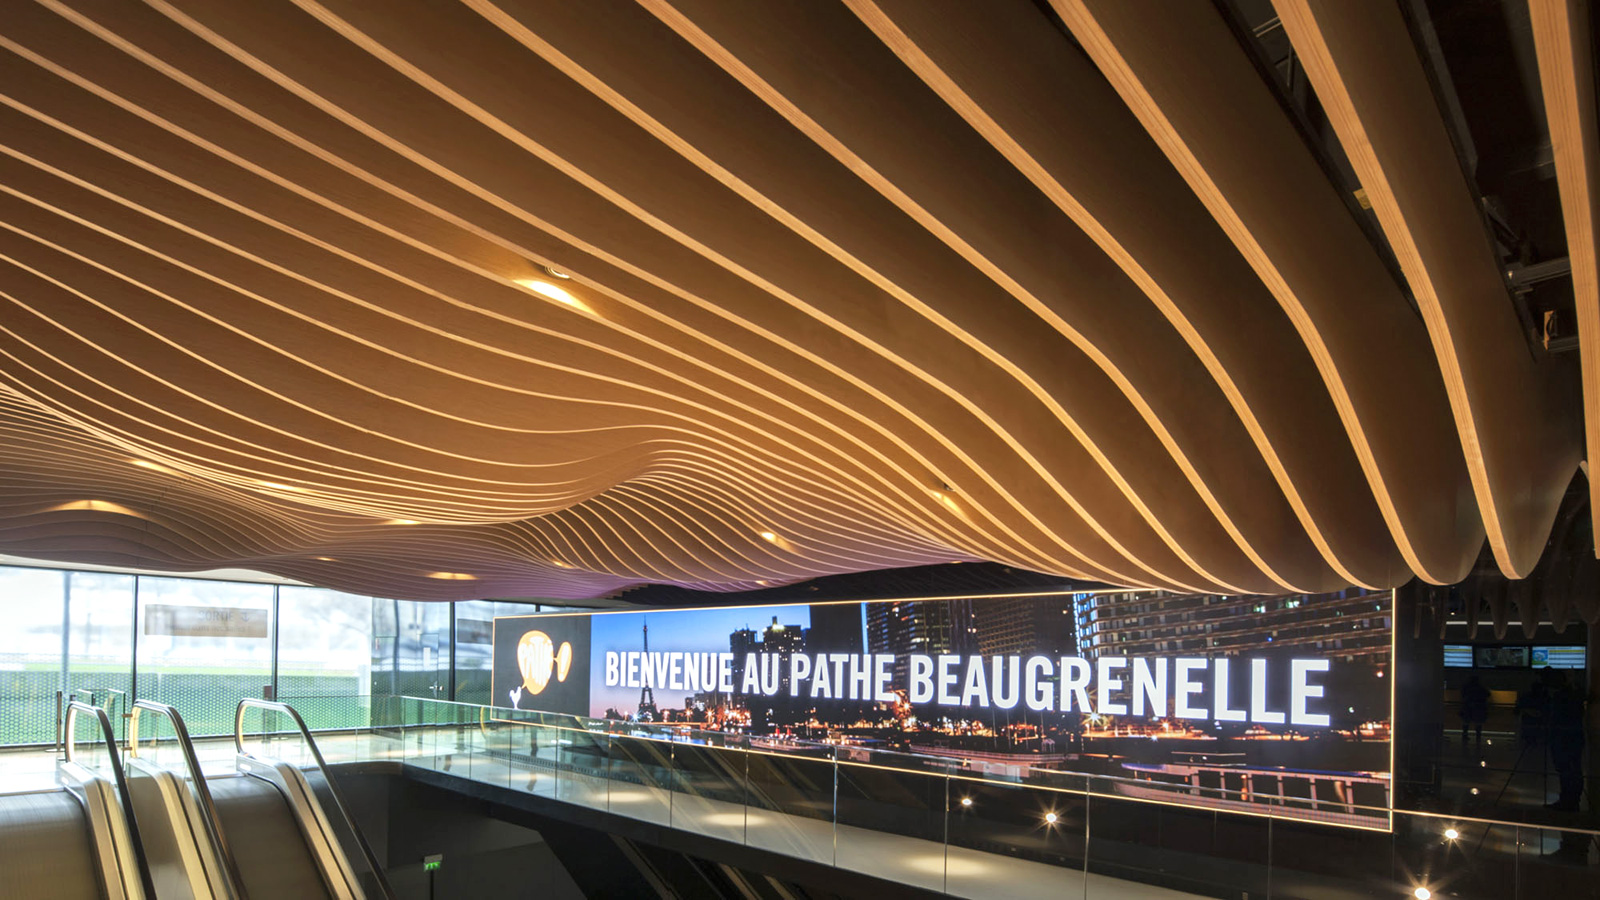 Pathé Beaugrunelle in Paris, France